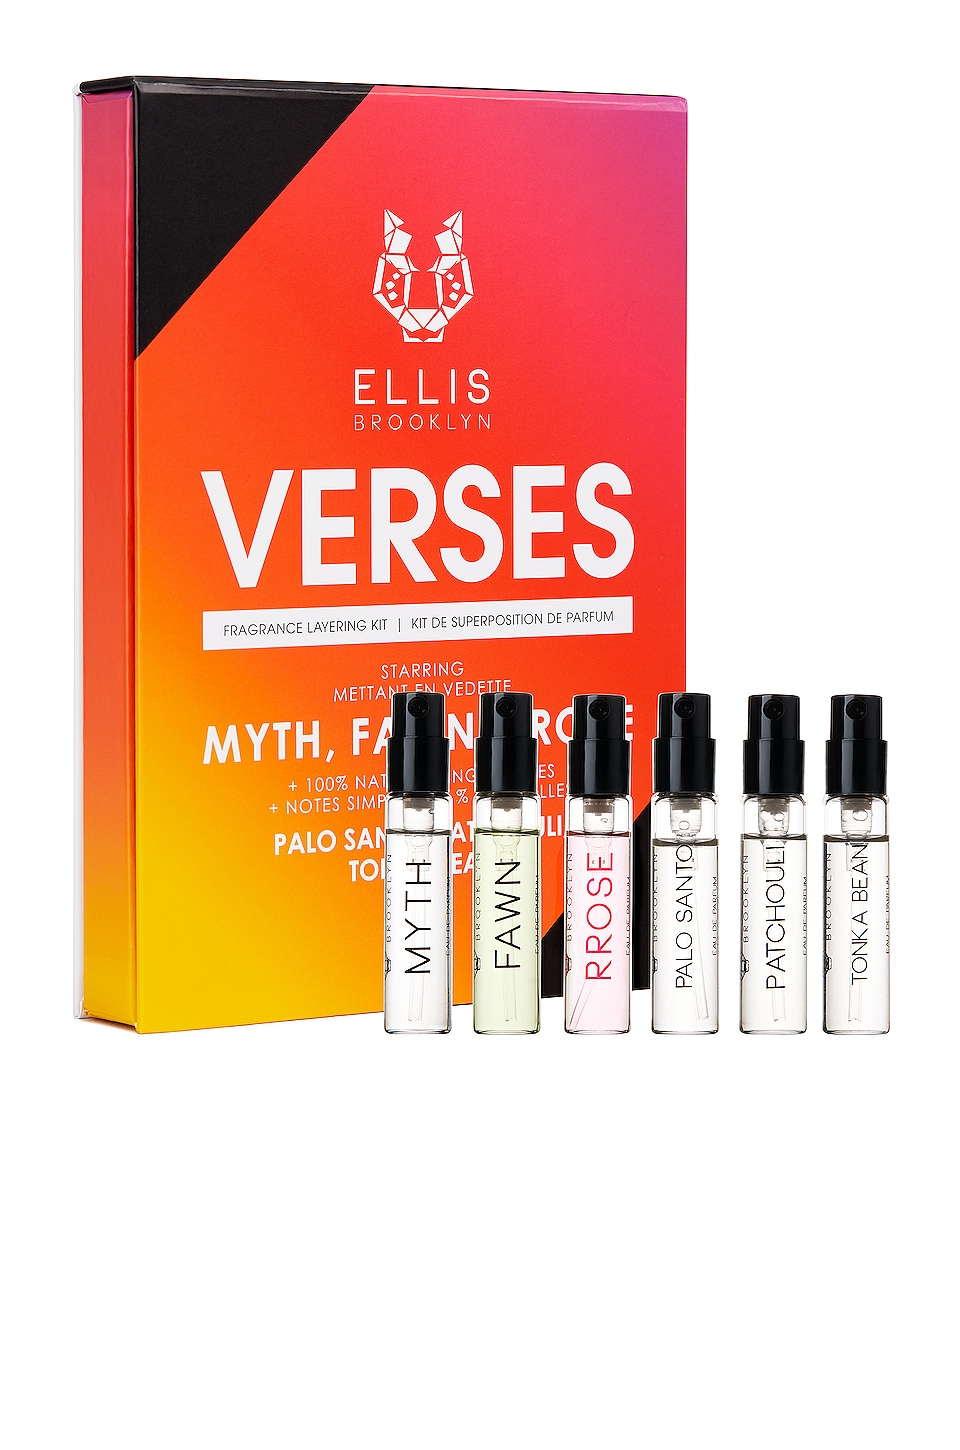 Ellis Brooklyn Verses Fragrance Layering Kit